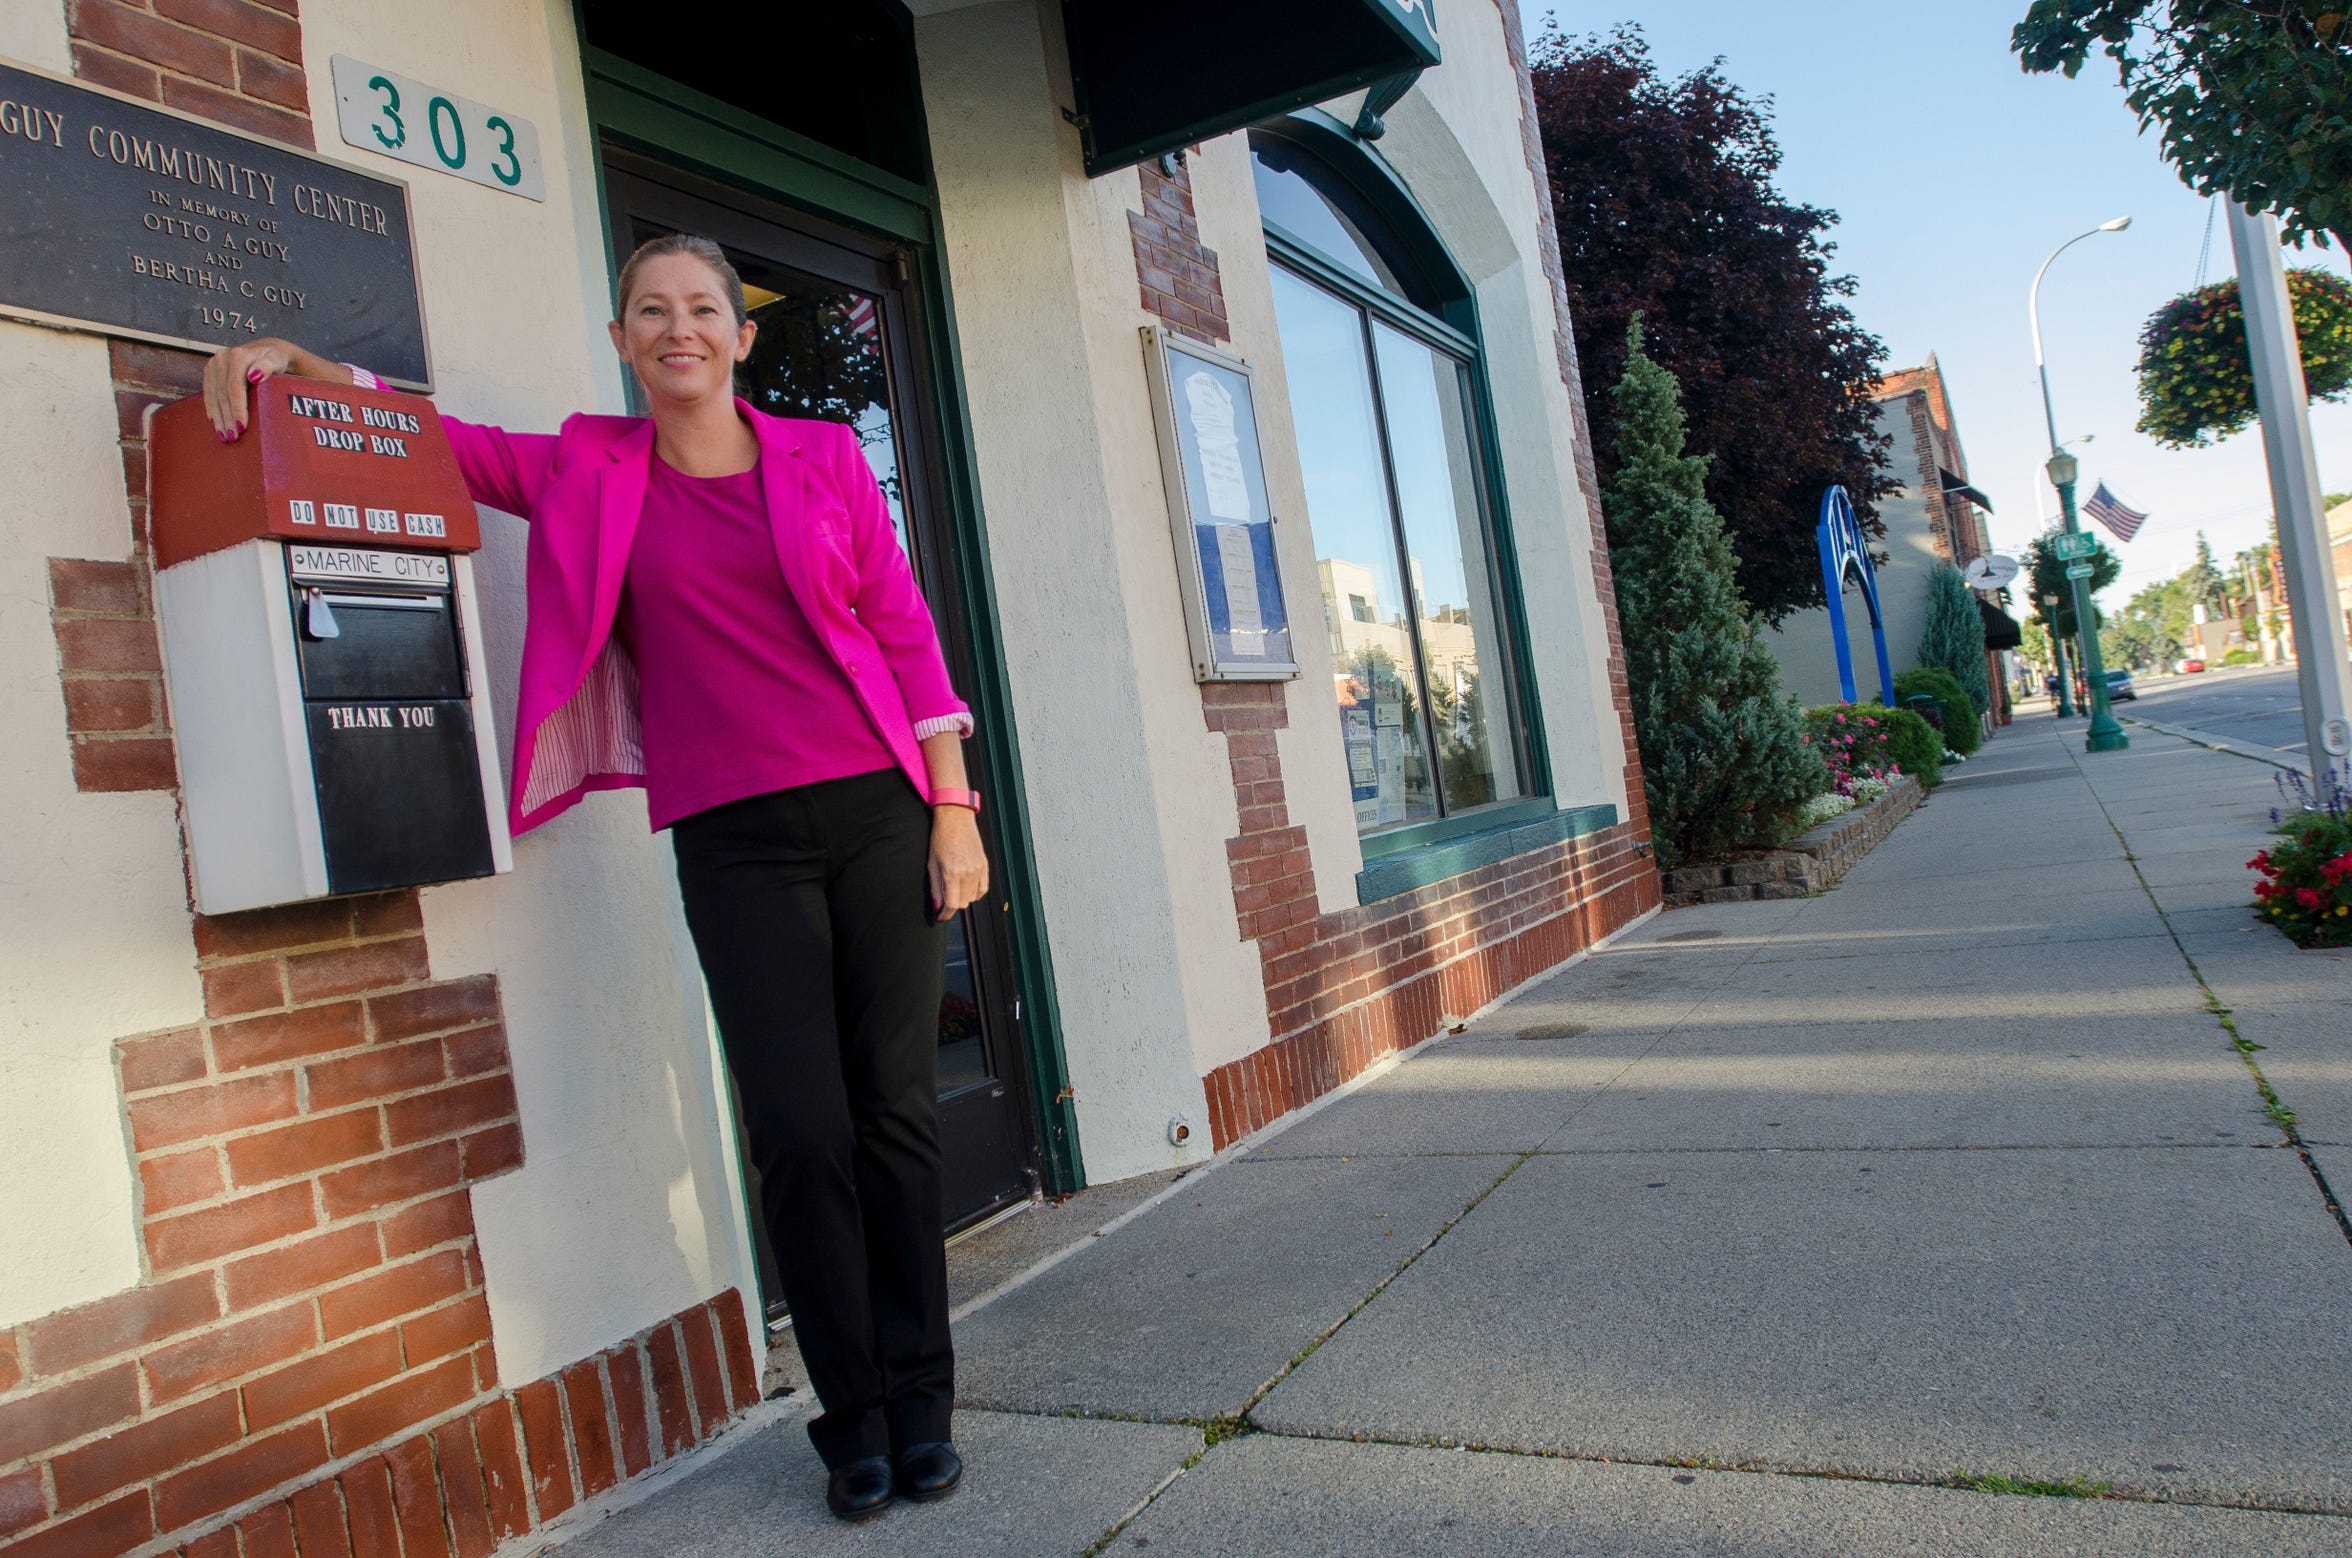 City Manager Elaine Leven stands outside the Guy Center in Marine City in September 2016. Among the handful of managers in the Thumb who don't reside in their community's borders, she began the job in 2015 and lives nearby in Clay Township.